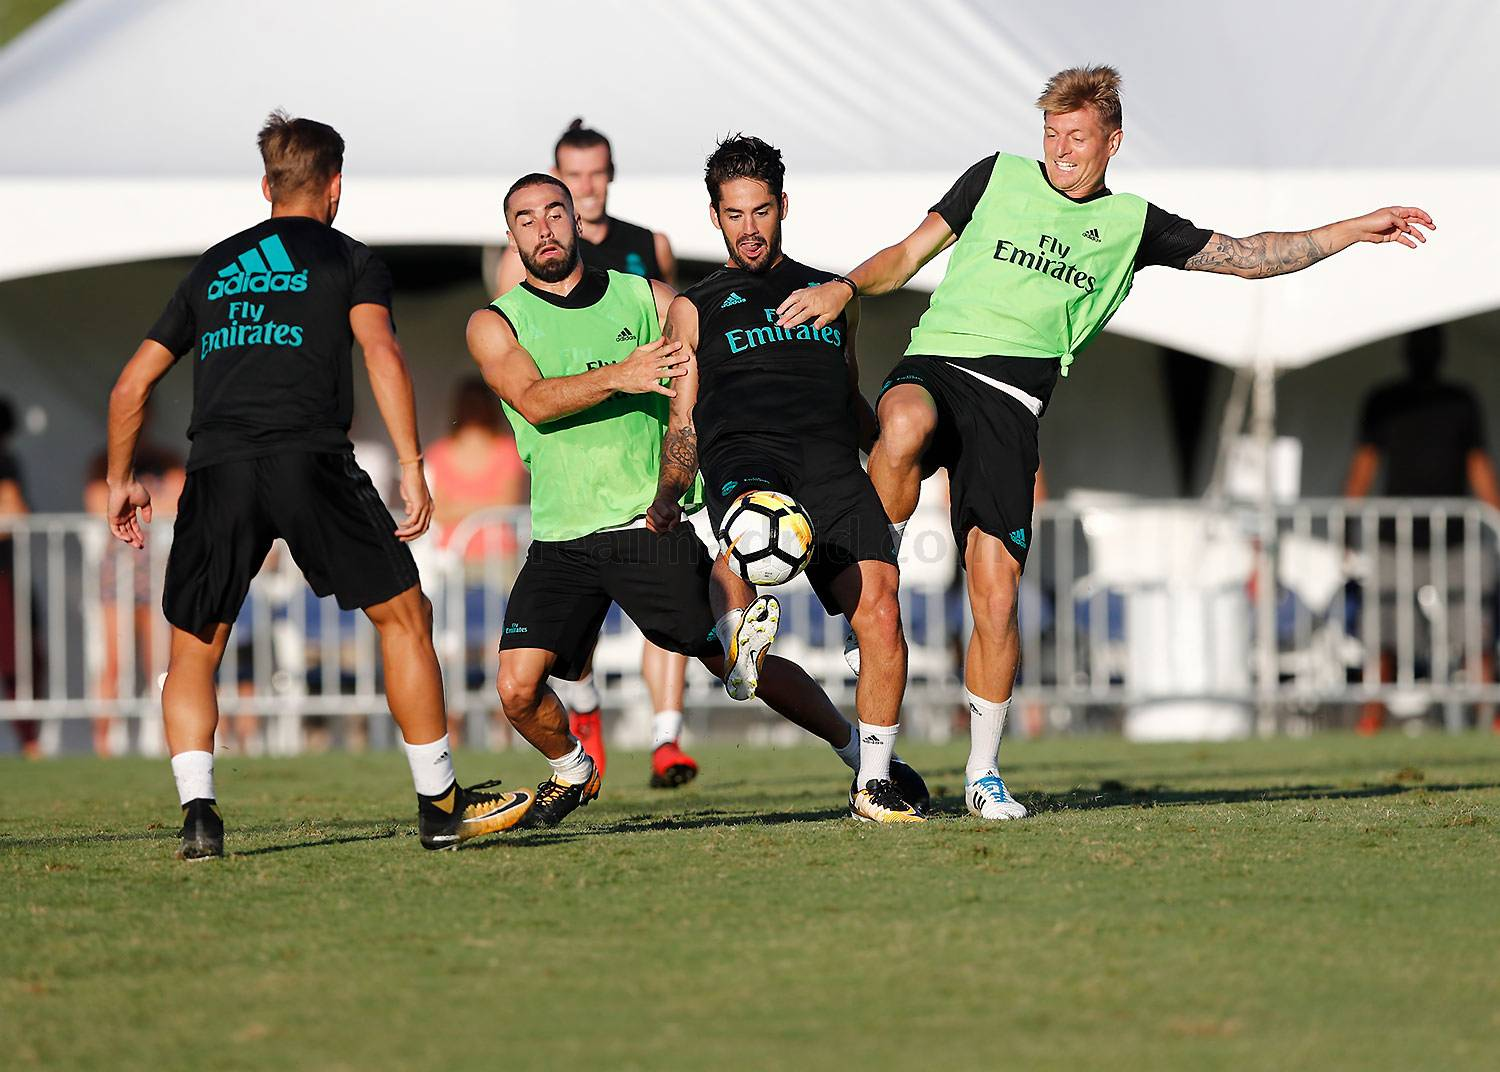 Real Madrid - Entrenamiento del Real Madrid en UCLA - 21-07-2017